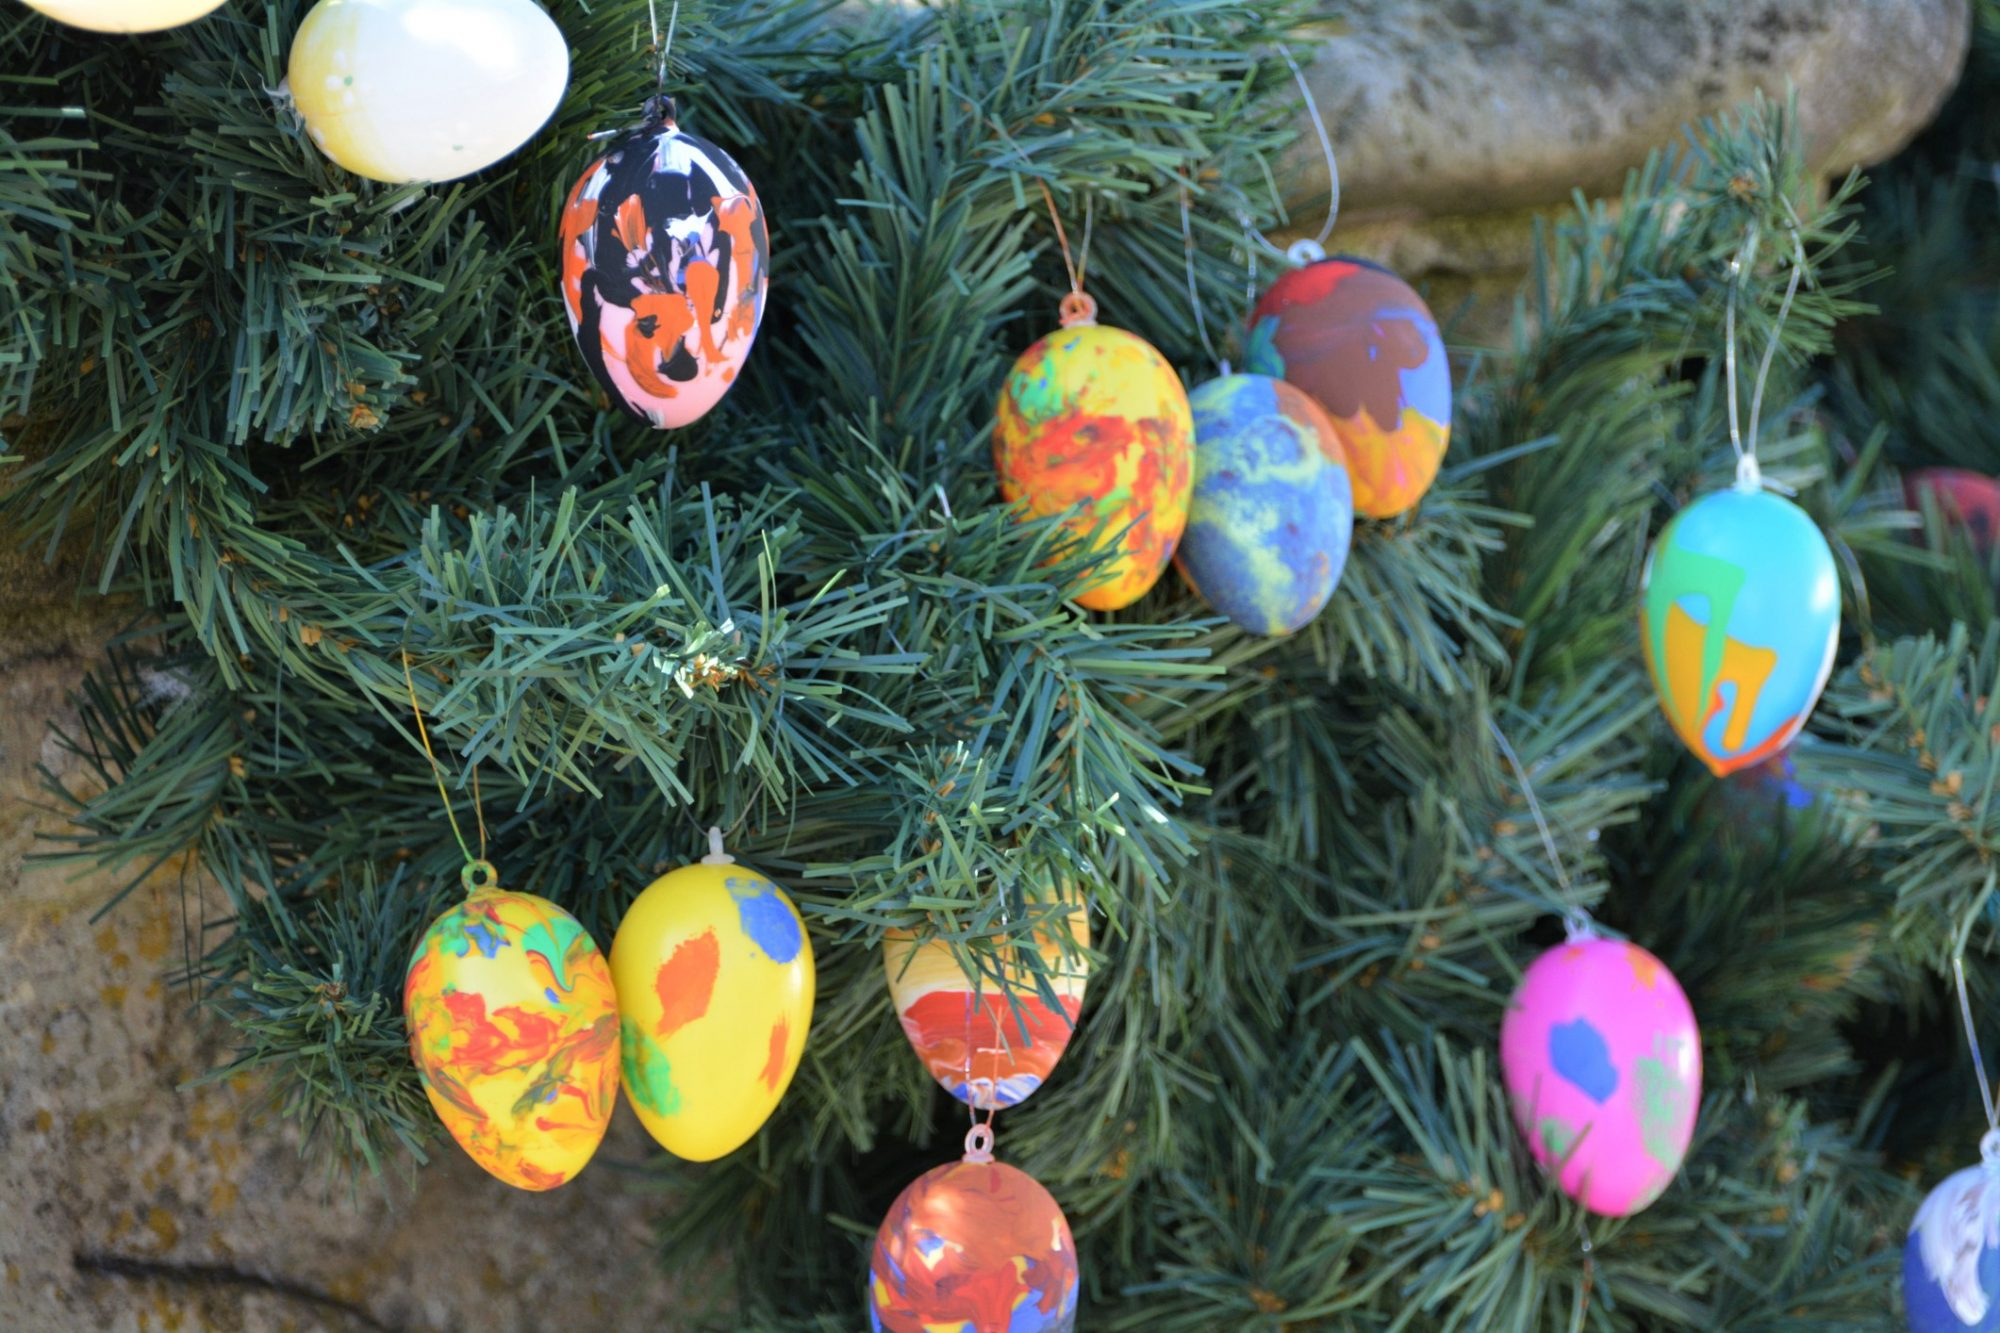 Close-Up Of Multi Colored Decorated Eggs Hanging On Christmas Tree